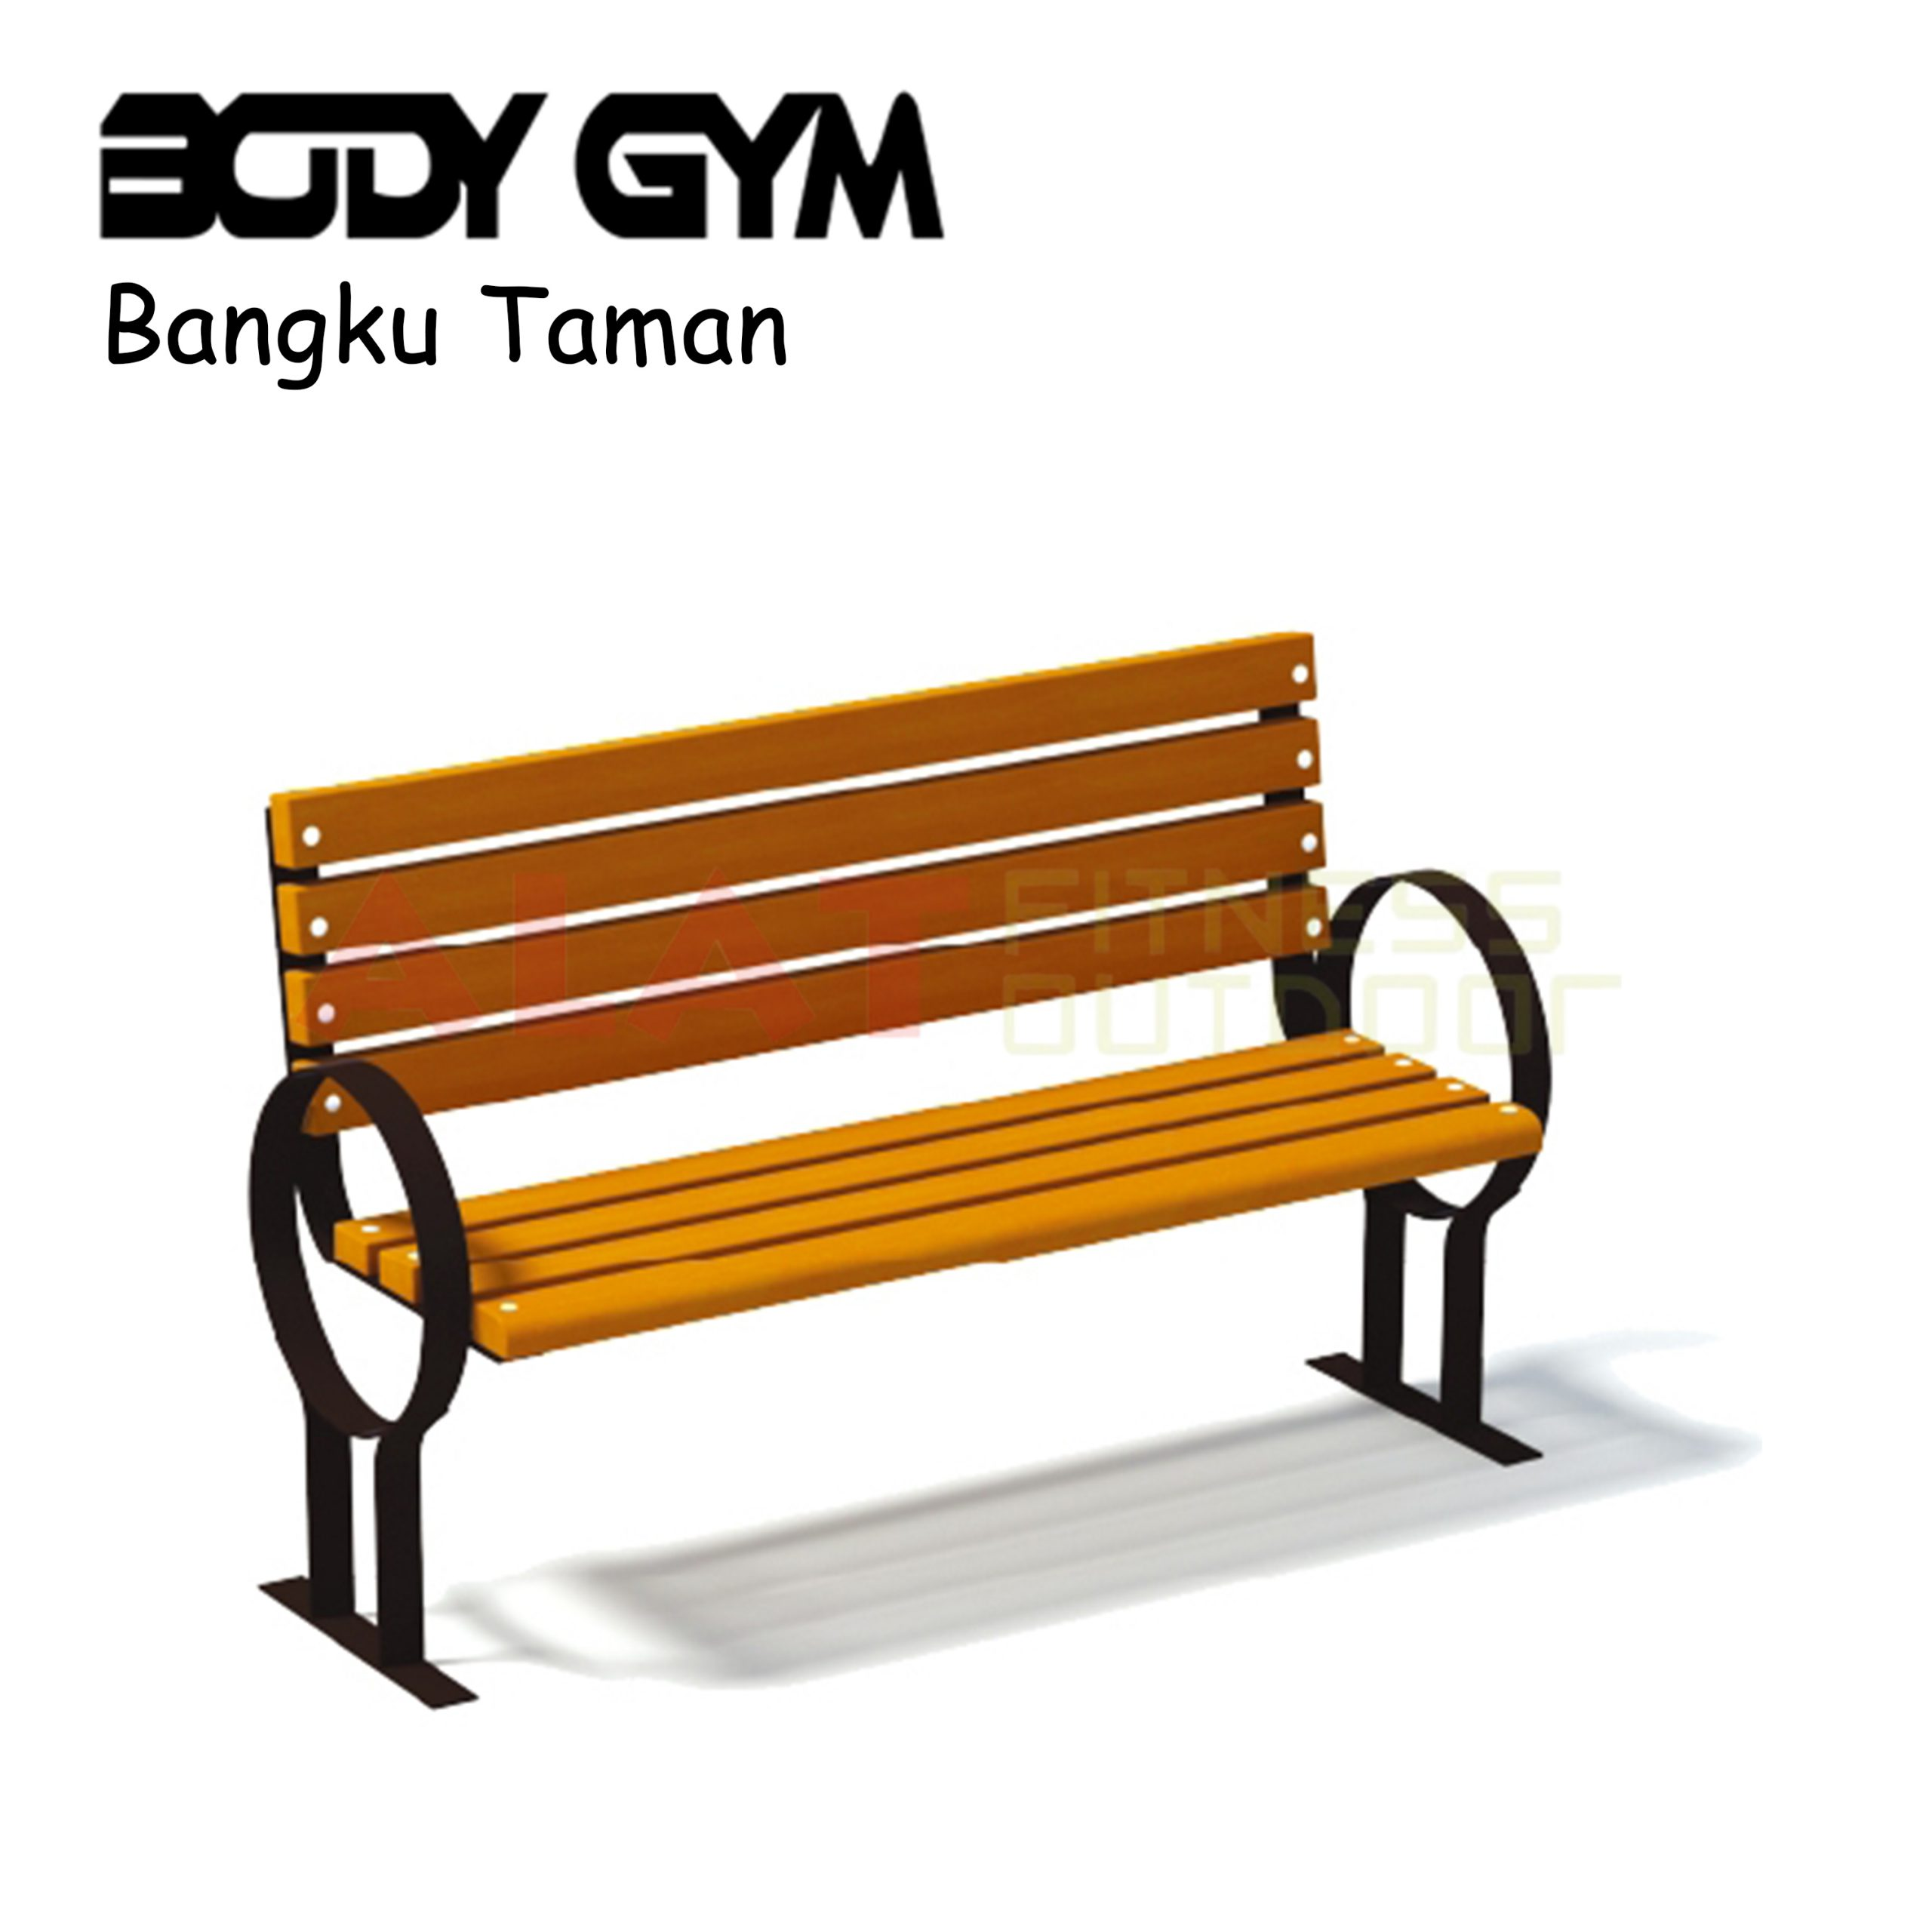 ALAT FITNESS OUTDOOR AFO 43 Bangku Taman scaled - Bangku Taman AFO-43 - Alat Fitness Outdoor